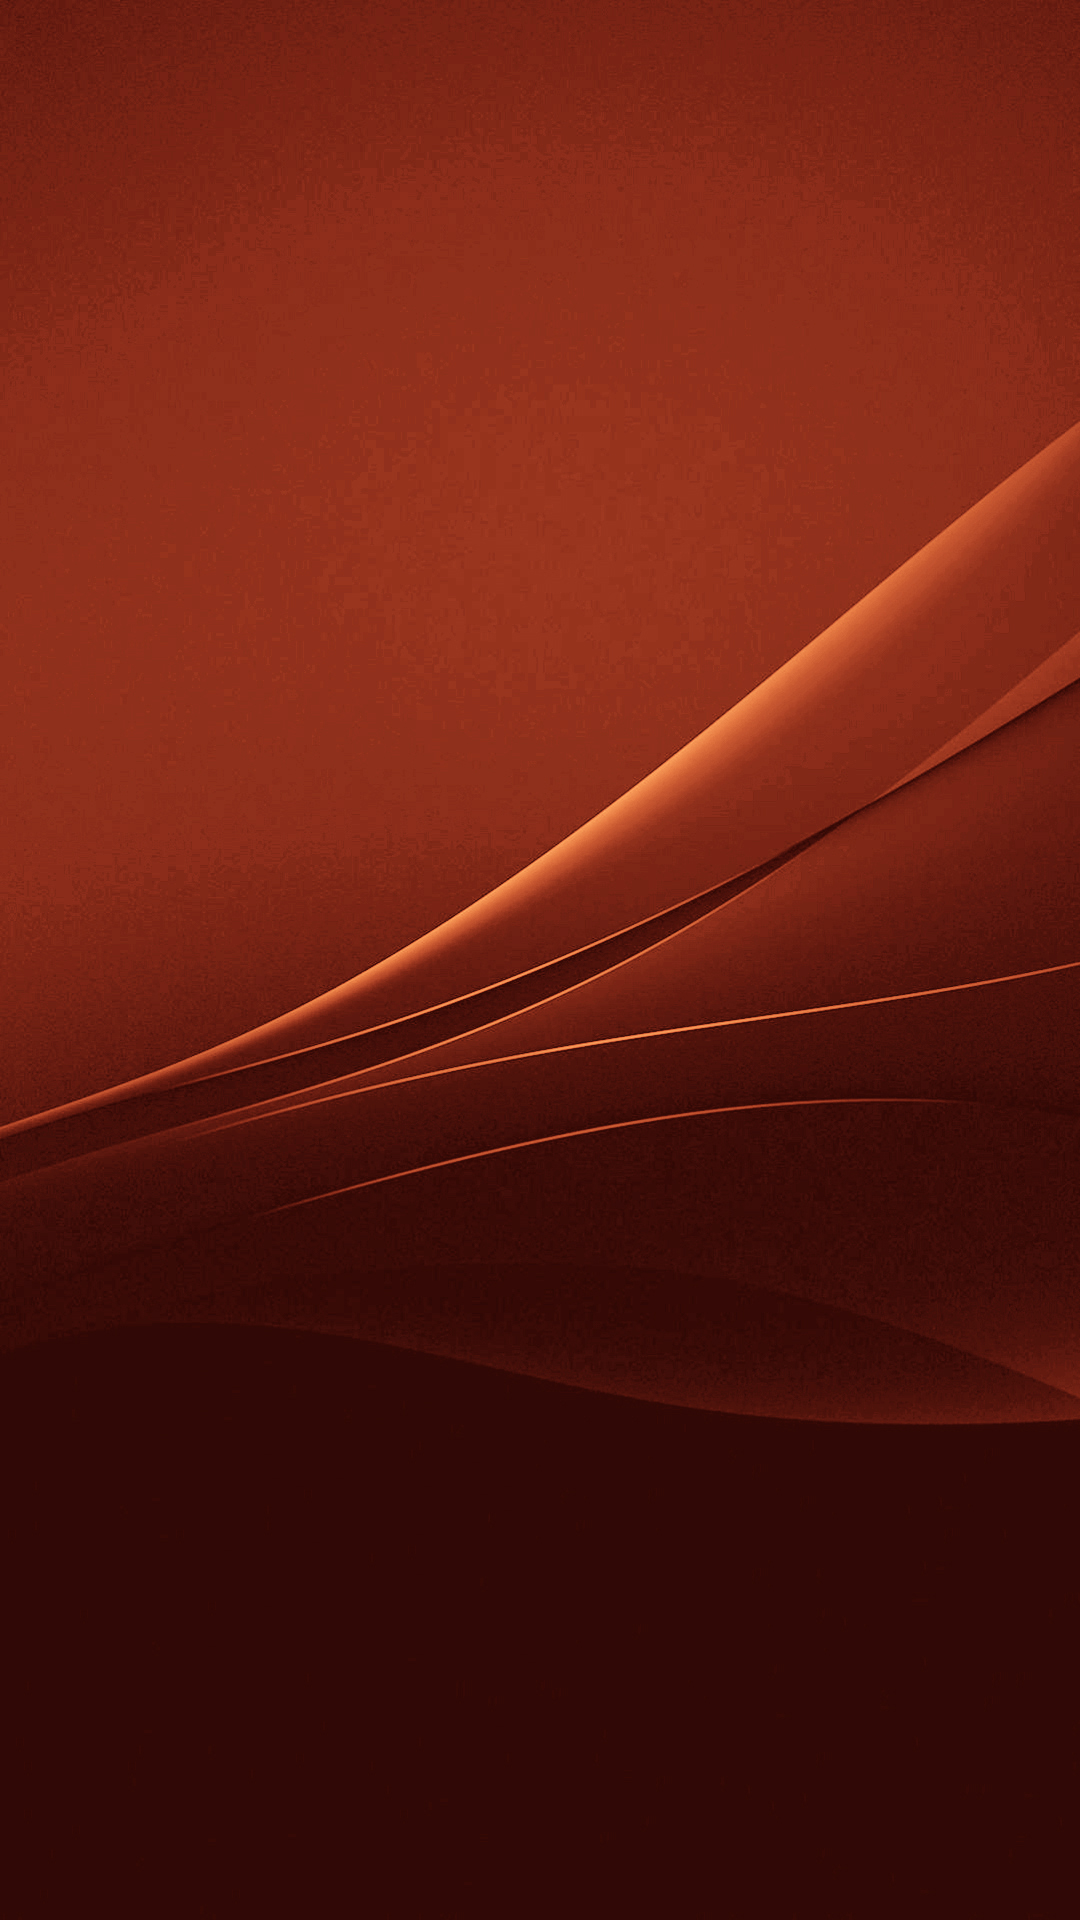 Brown xperia lollipop experience flow wallpaper gizmo for Wallpaper xperia home